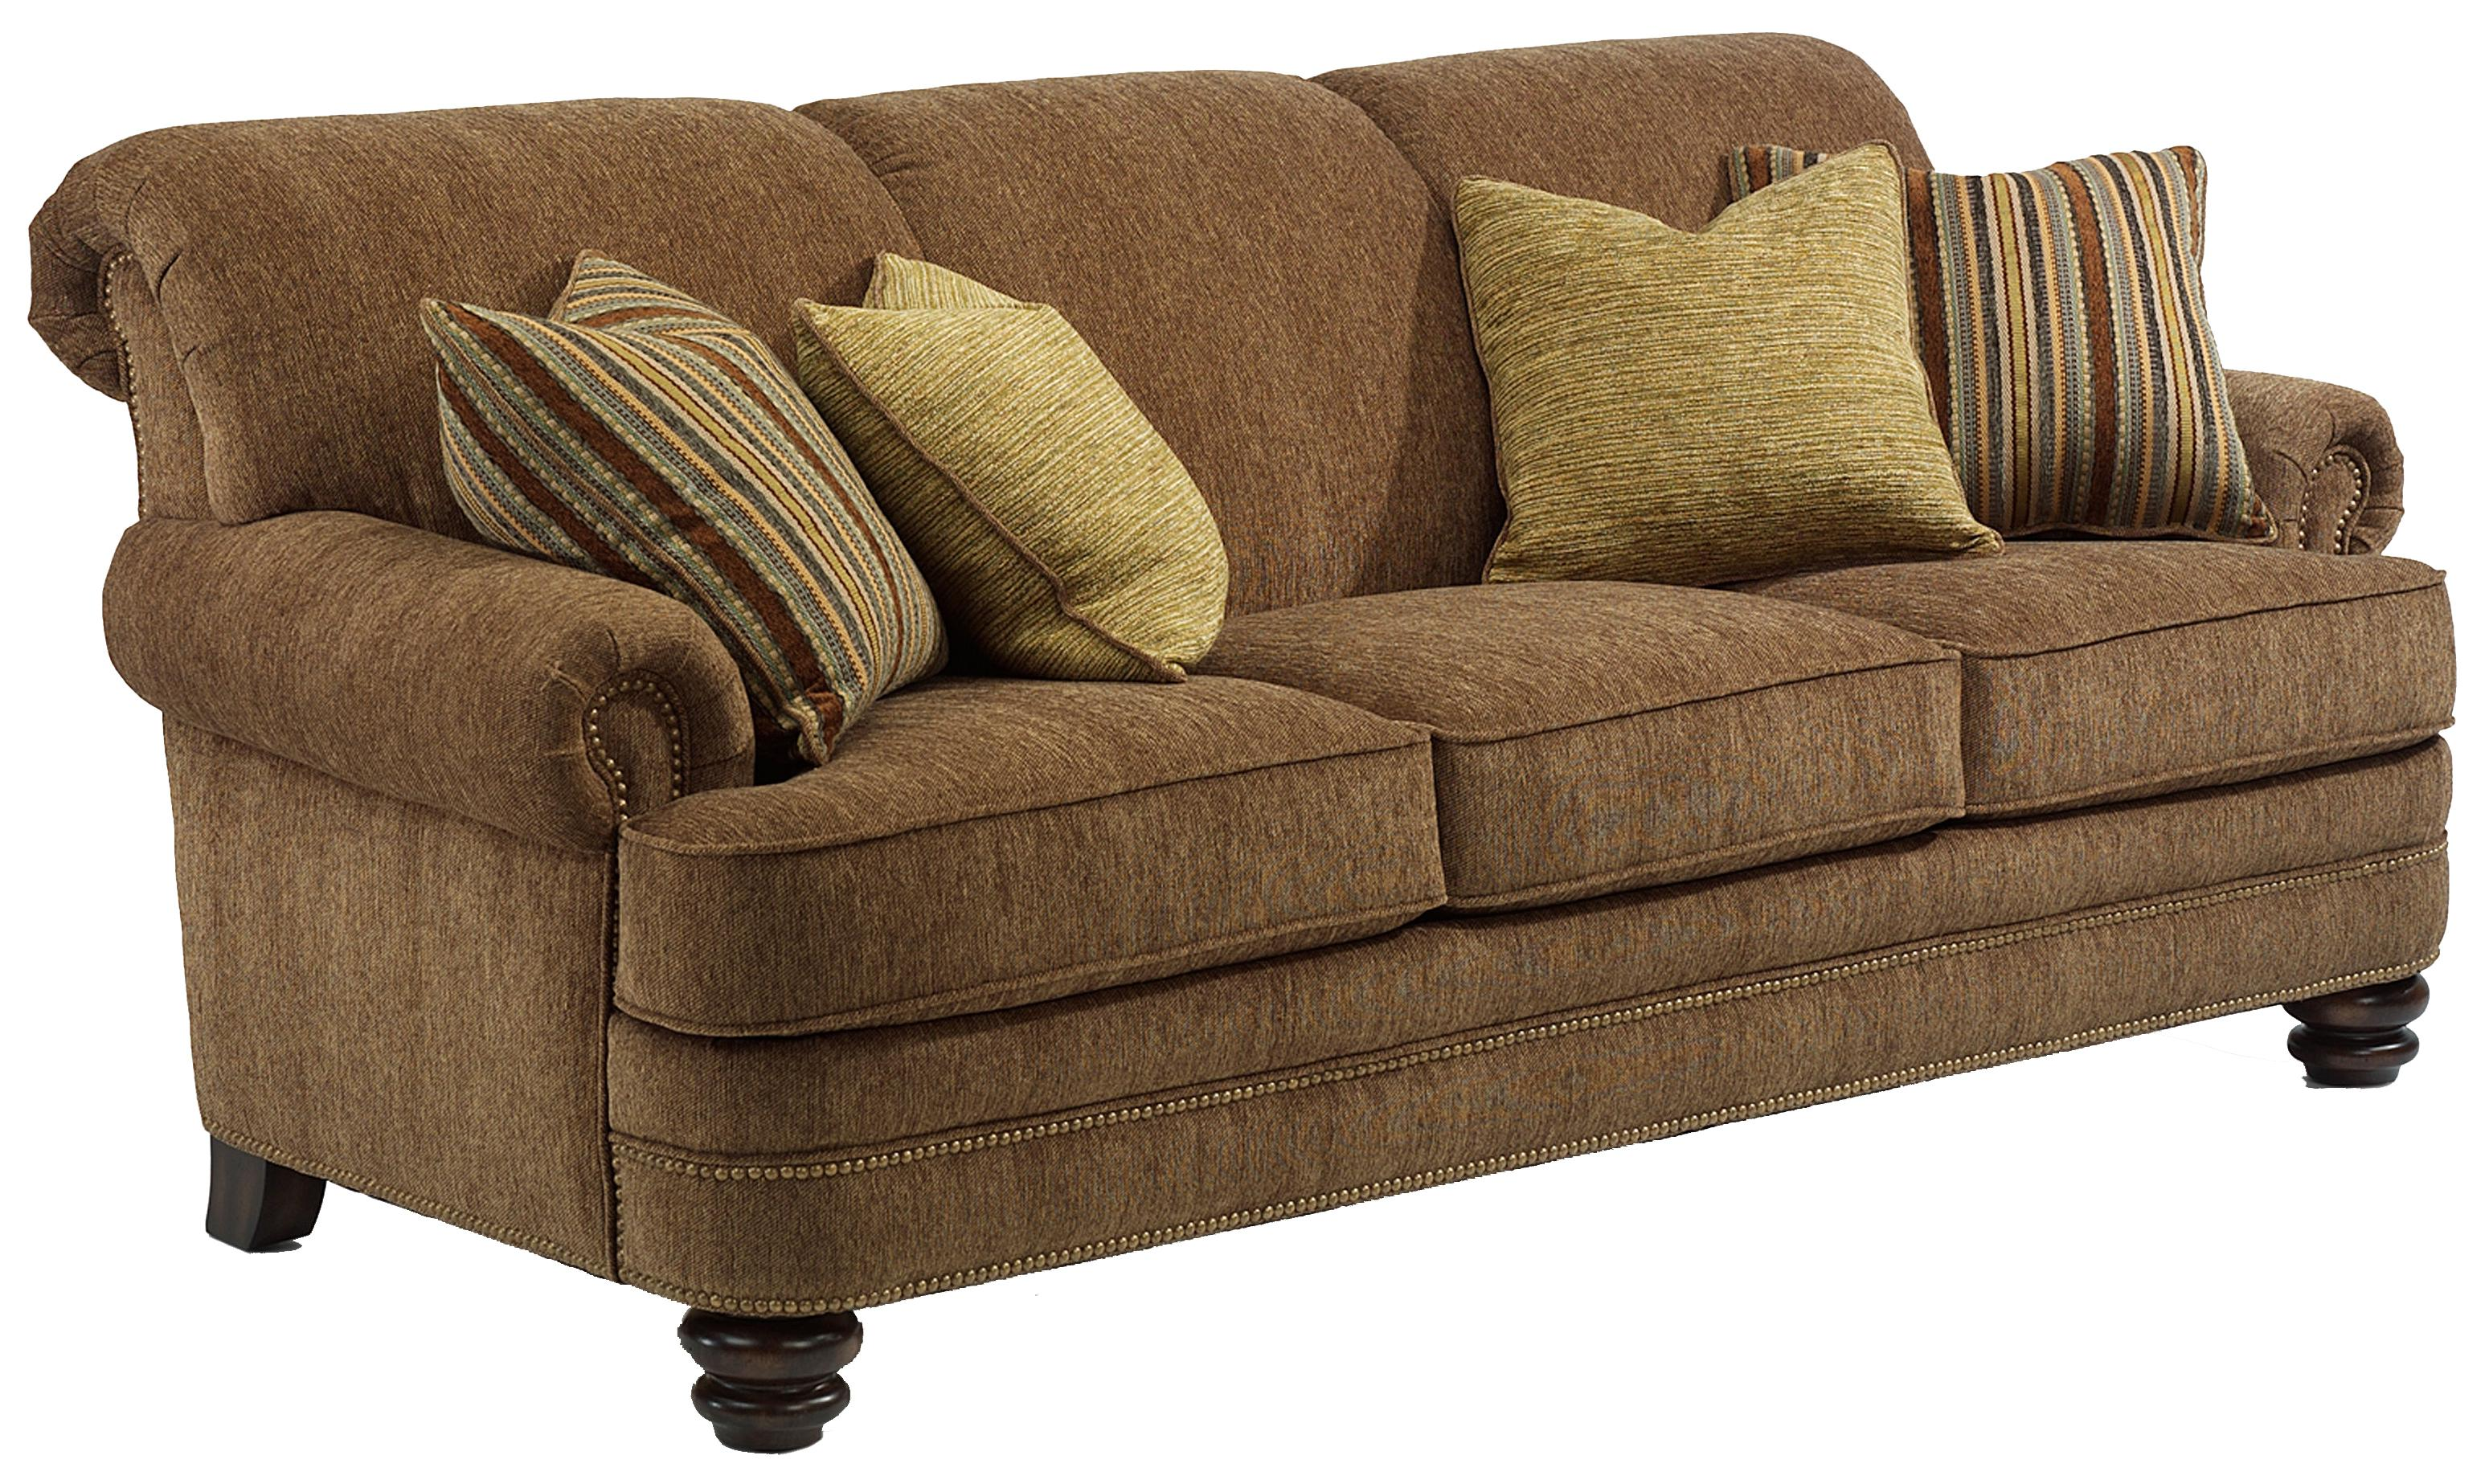 Flexsteel Bay Bridge Traditional Sofa - Item Number: 7791-31